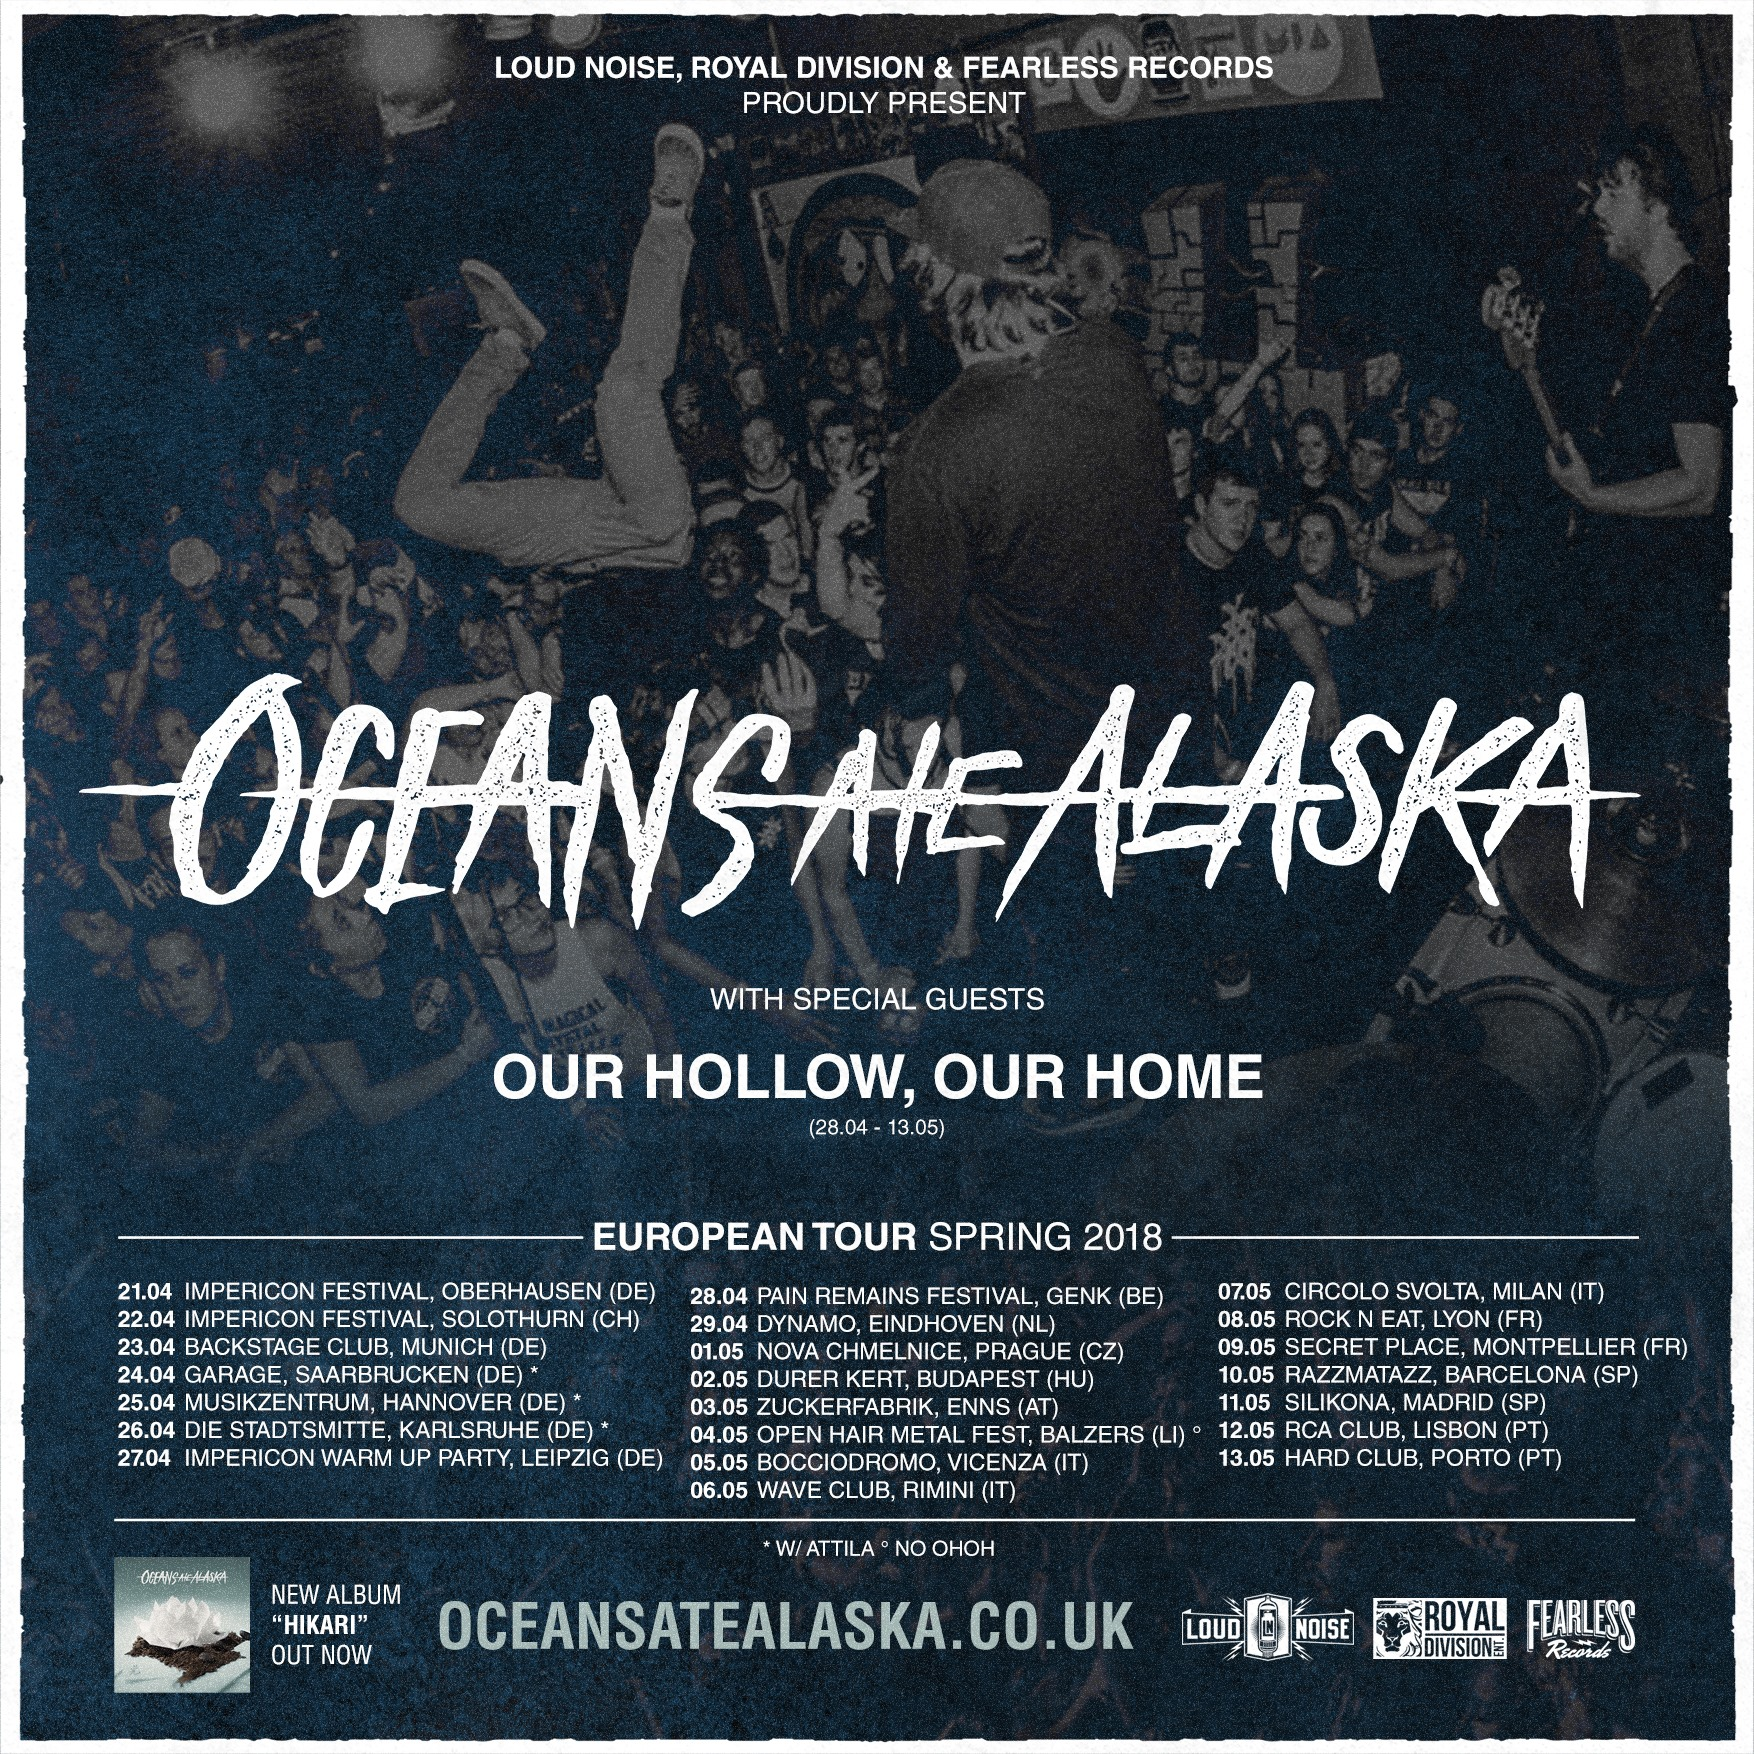 oceans ate Alaska our hollow our home resolve rock'n'eat lyon urgences sonores one standing live report